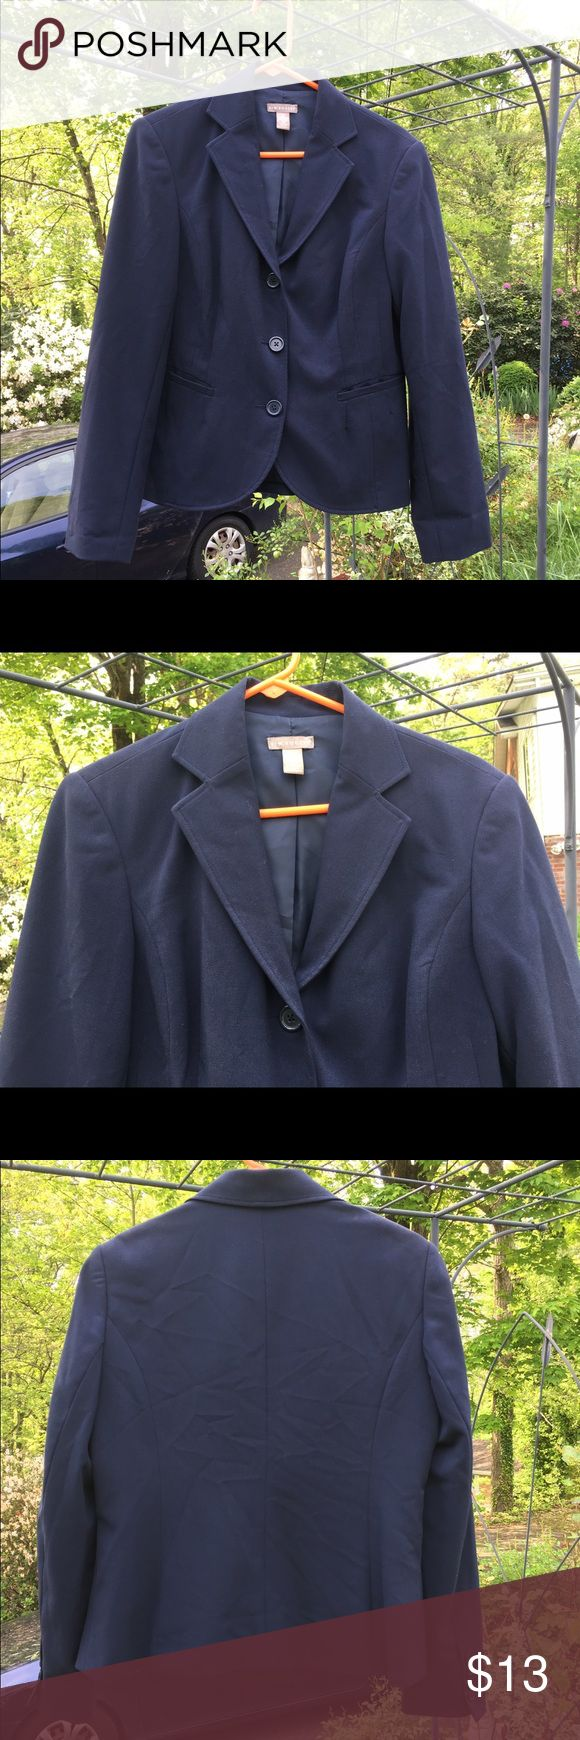 Kim Rogers Navy Blue Lined Blazer Jacket size 10 Kim Rogers lined Navy blue blazer jacket is size 10. Blazer has a collar, 2 pockets and closes with 3 buttons. Sleeves have 4 buttons each. Shell: I'm having trouble reading the numbers but looks like 63% polyester 33% rayon 4% spandex. Lining: 100% polyester. Made in Guatemala. Kim Rogers Jackets & Coats Blazers